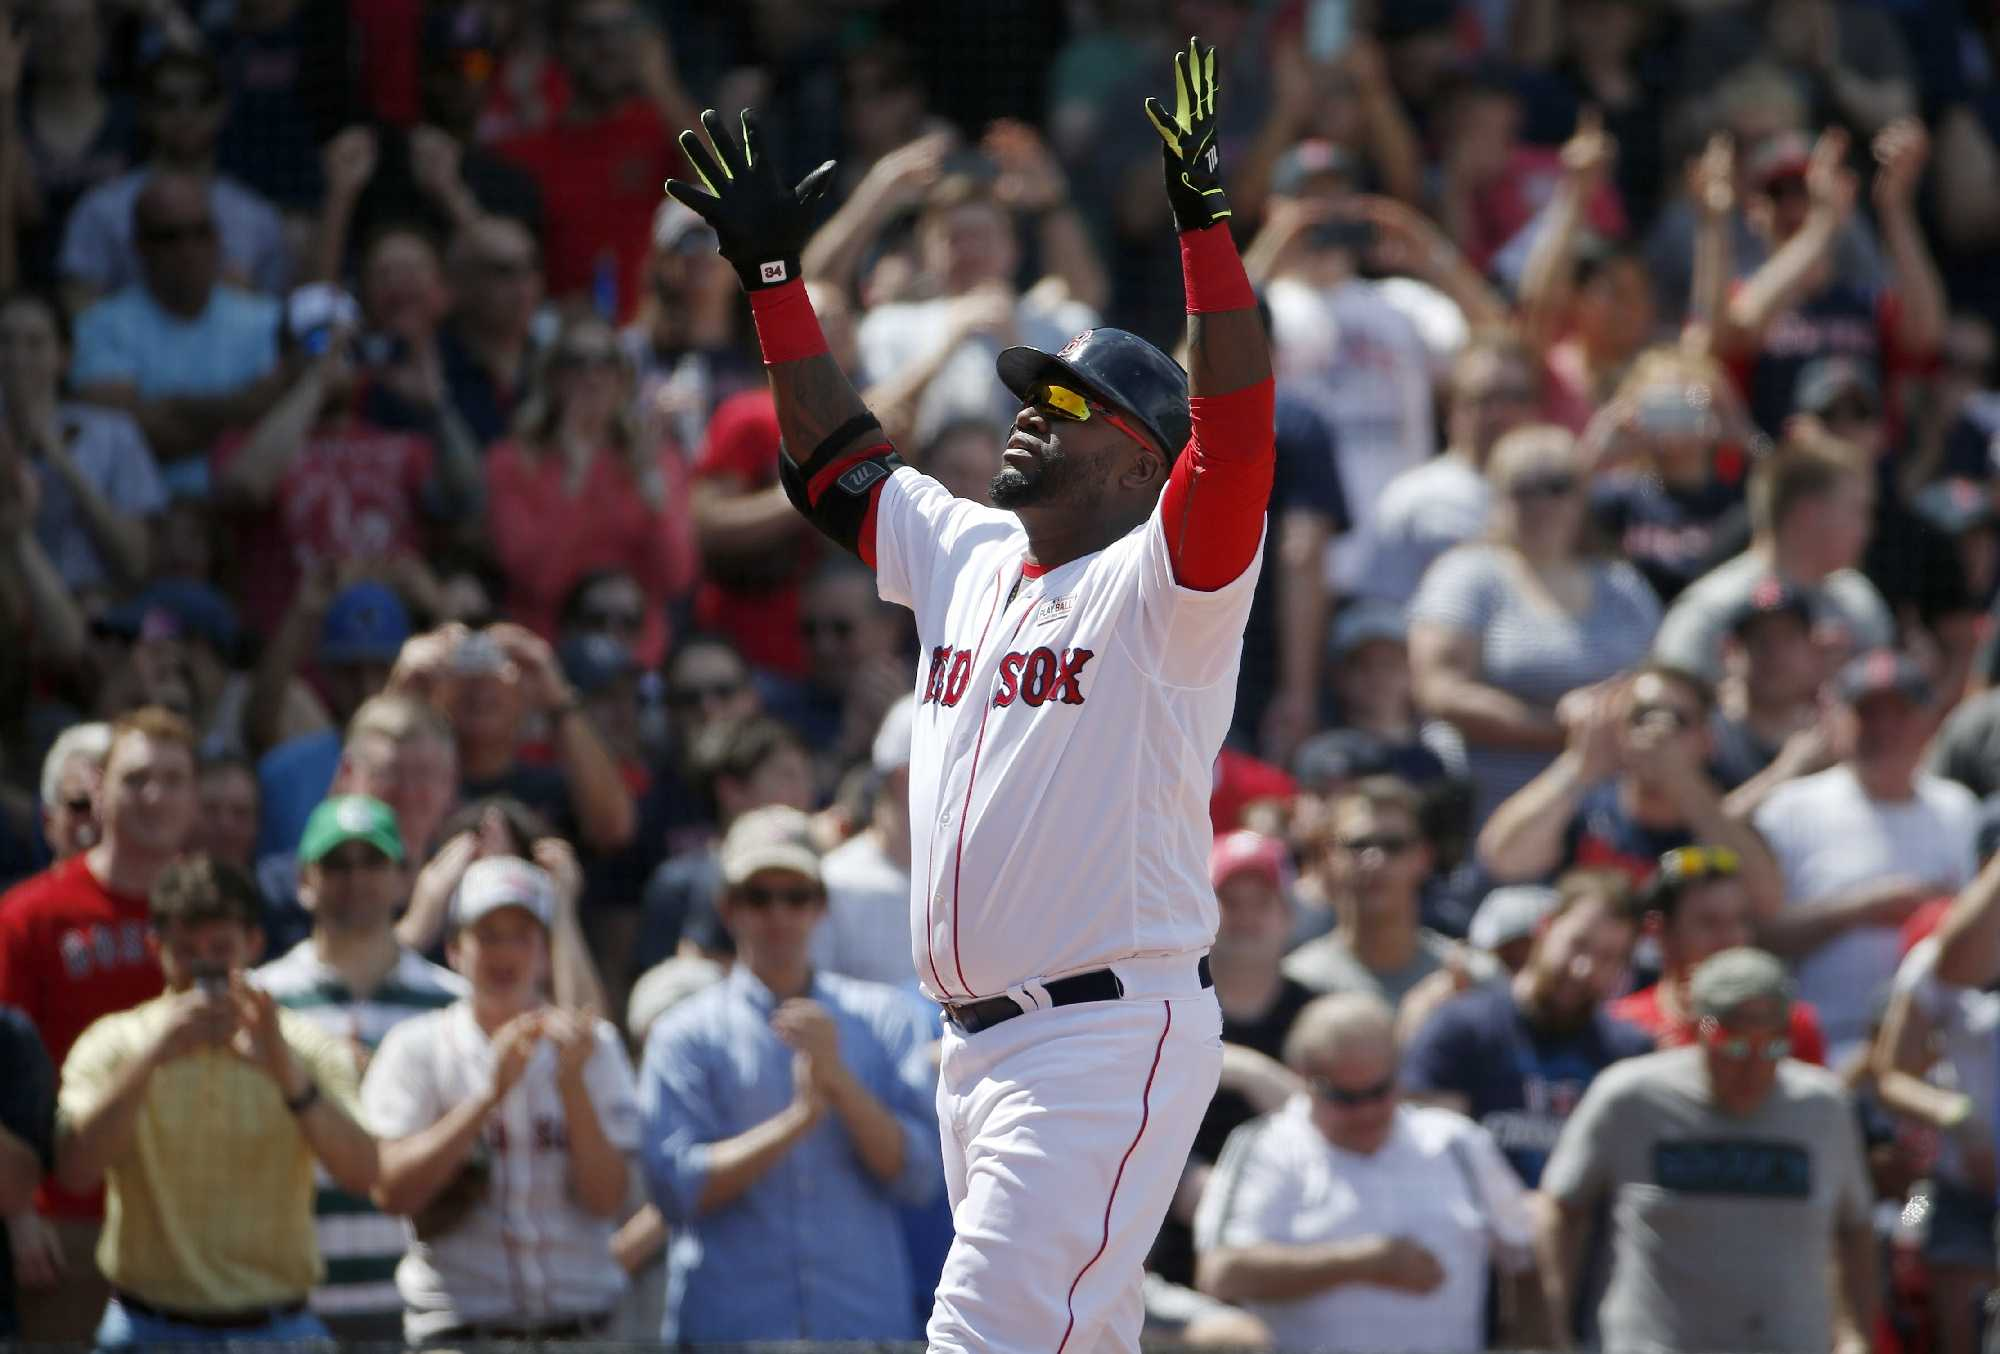 For Big Papi, a lot of love amid a ration of razzing